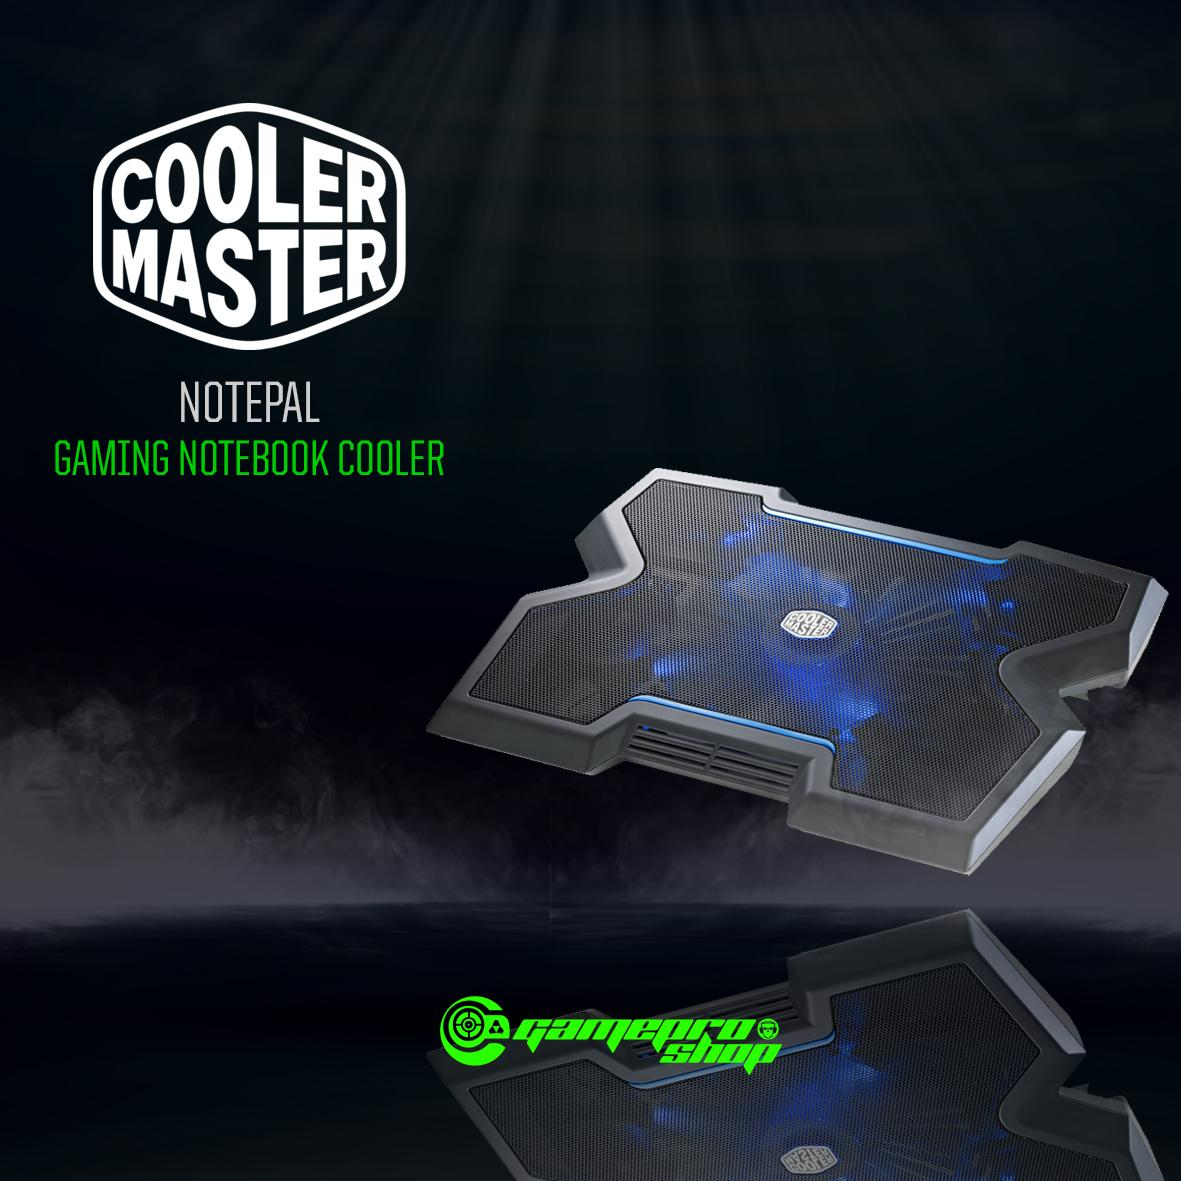 COOLER MASTER NOTEPAL X3 with BLUE LED GAMING NOTEBOOK COOLER *LAZADA BIRTHDAY PROMO*